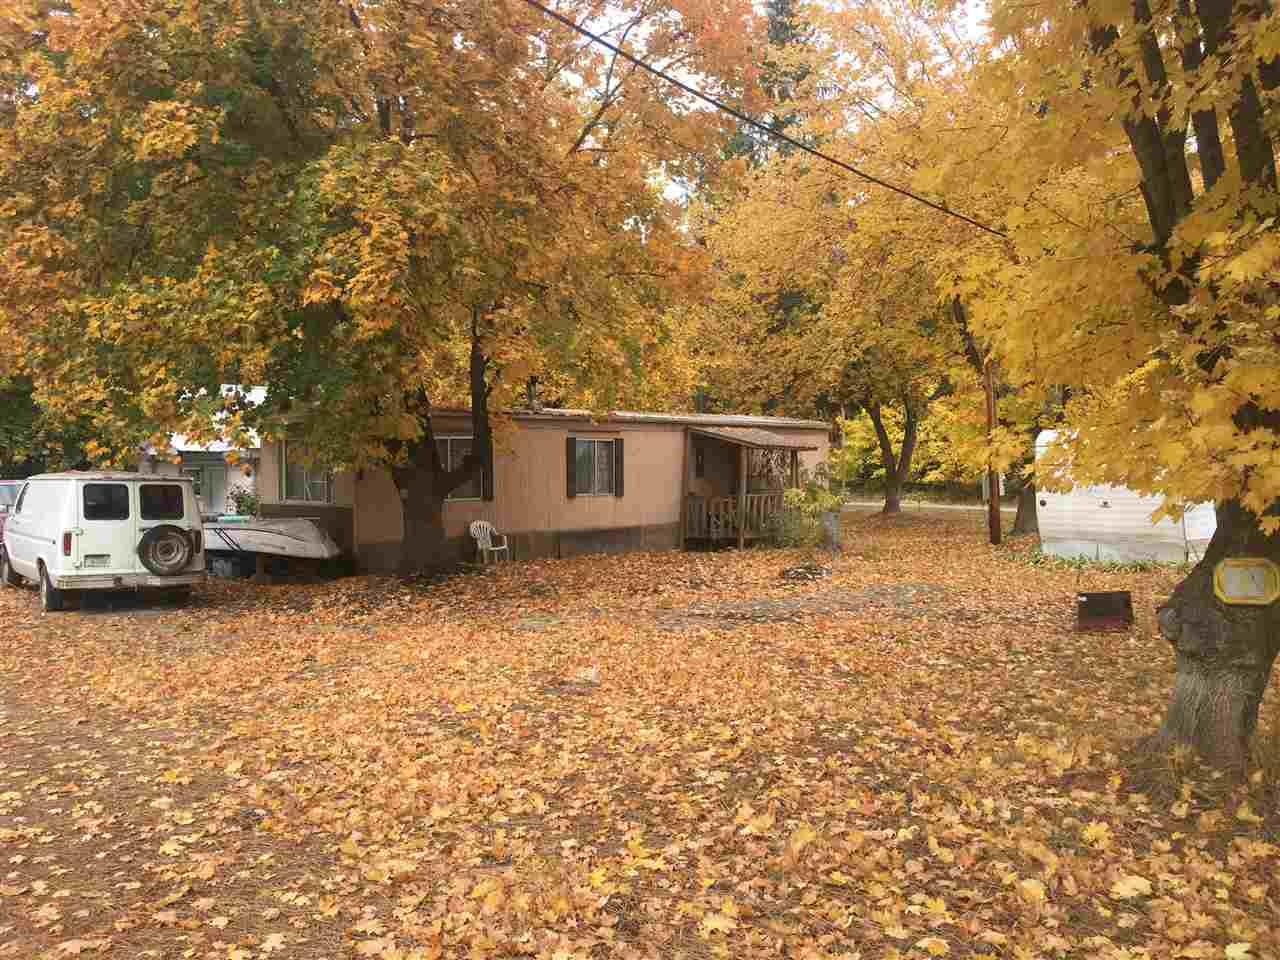 41 10th Street, Troy Mobile Home Park & Laundr, Troy, MT 59935 (MLS Single Family Mobile Homes on mobile homes ranch, mobile homes manufactured homes, mobile homes lots, mobile homes luxury,